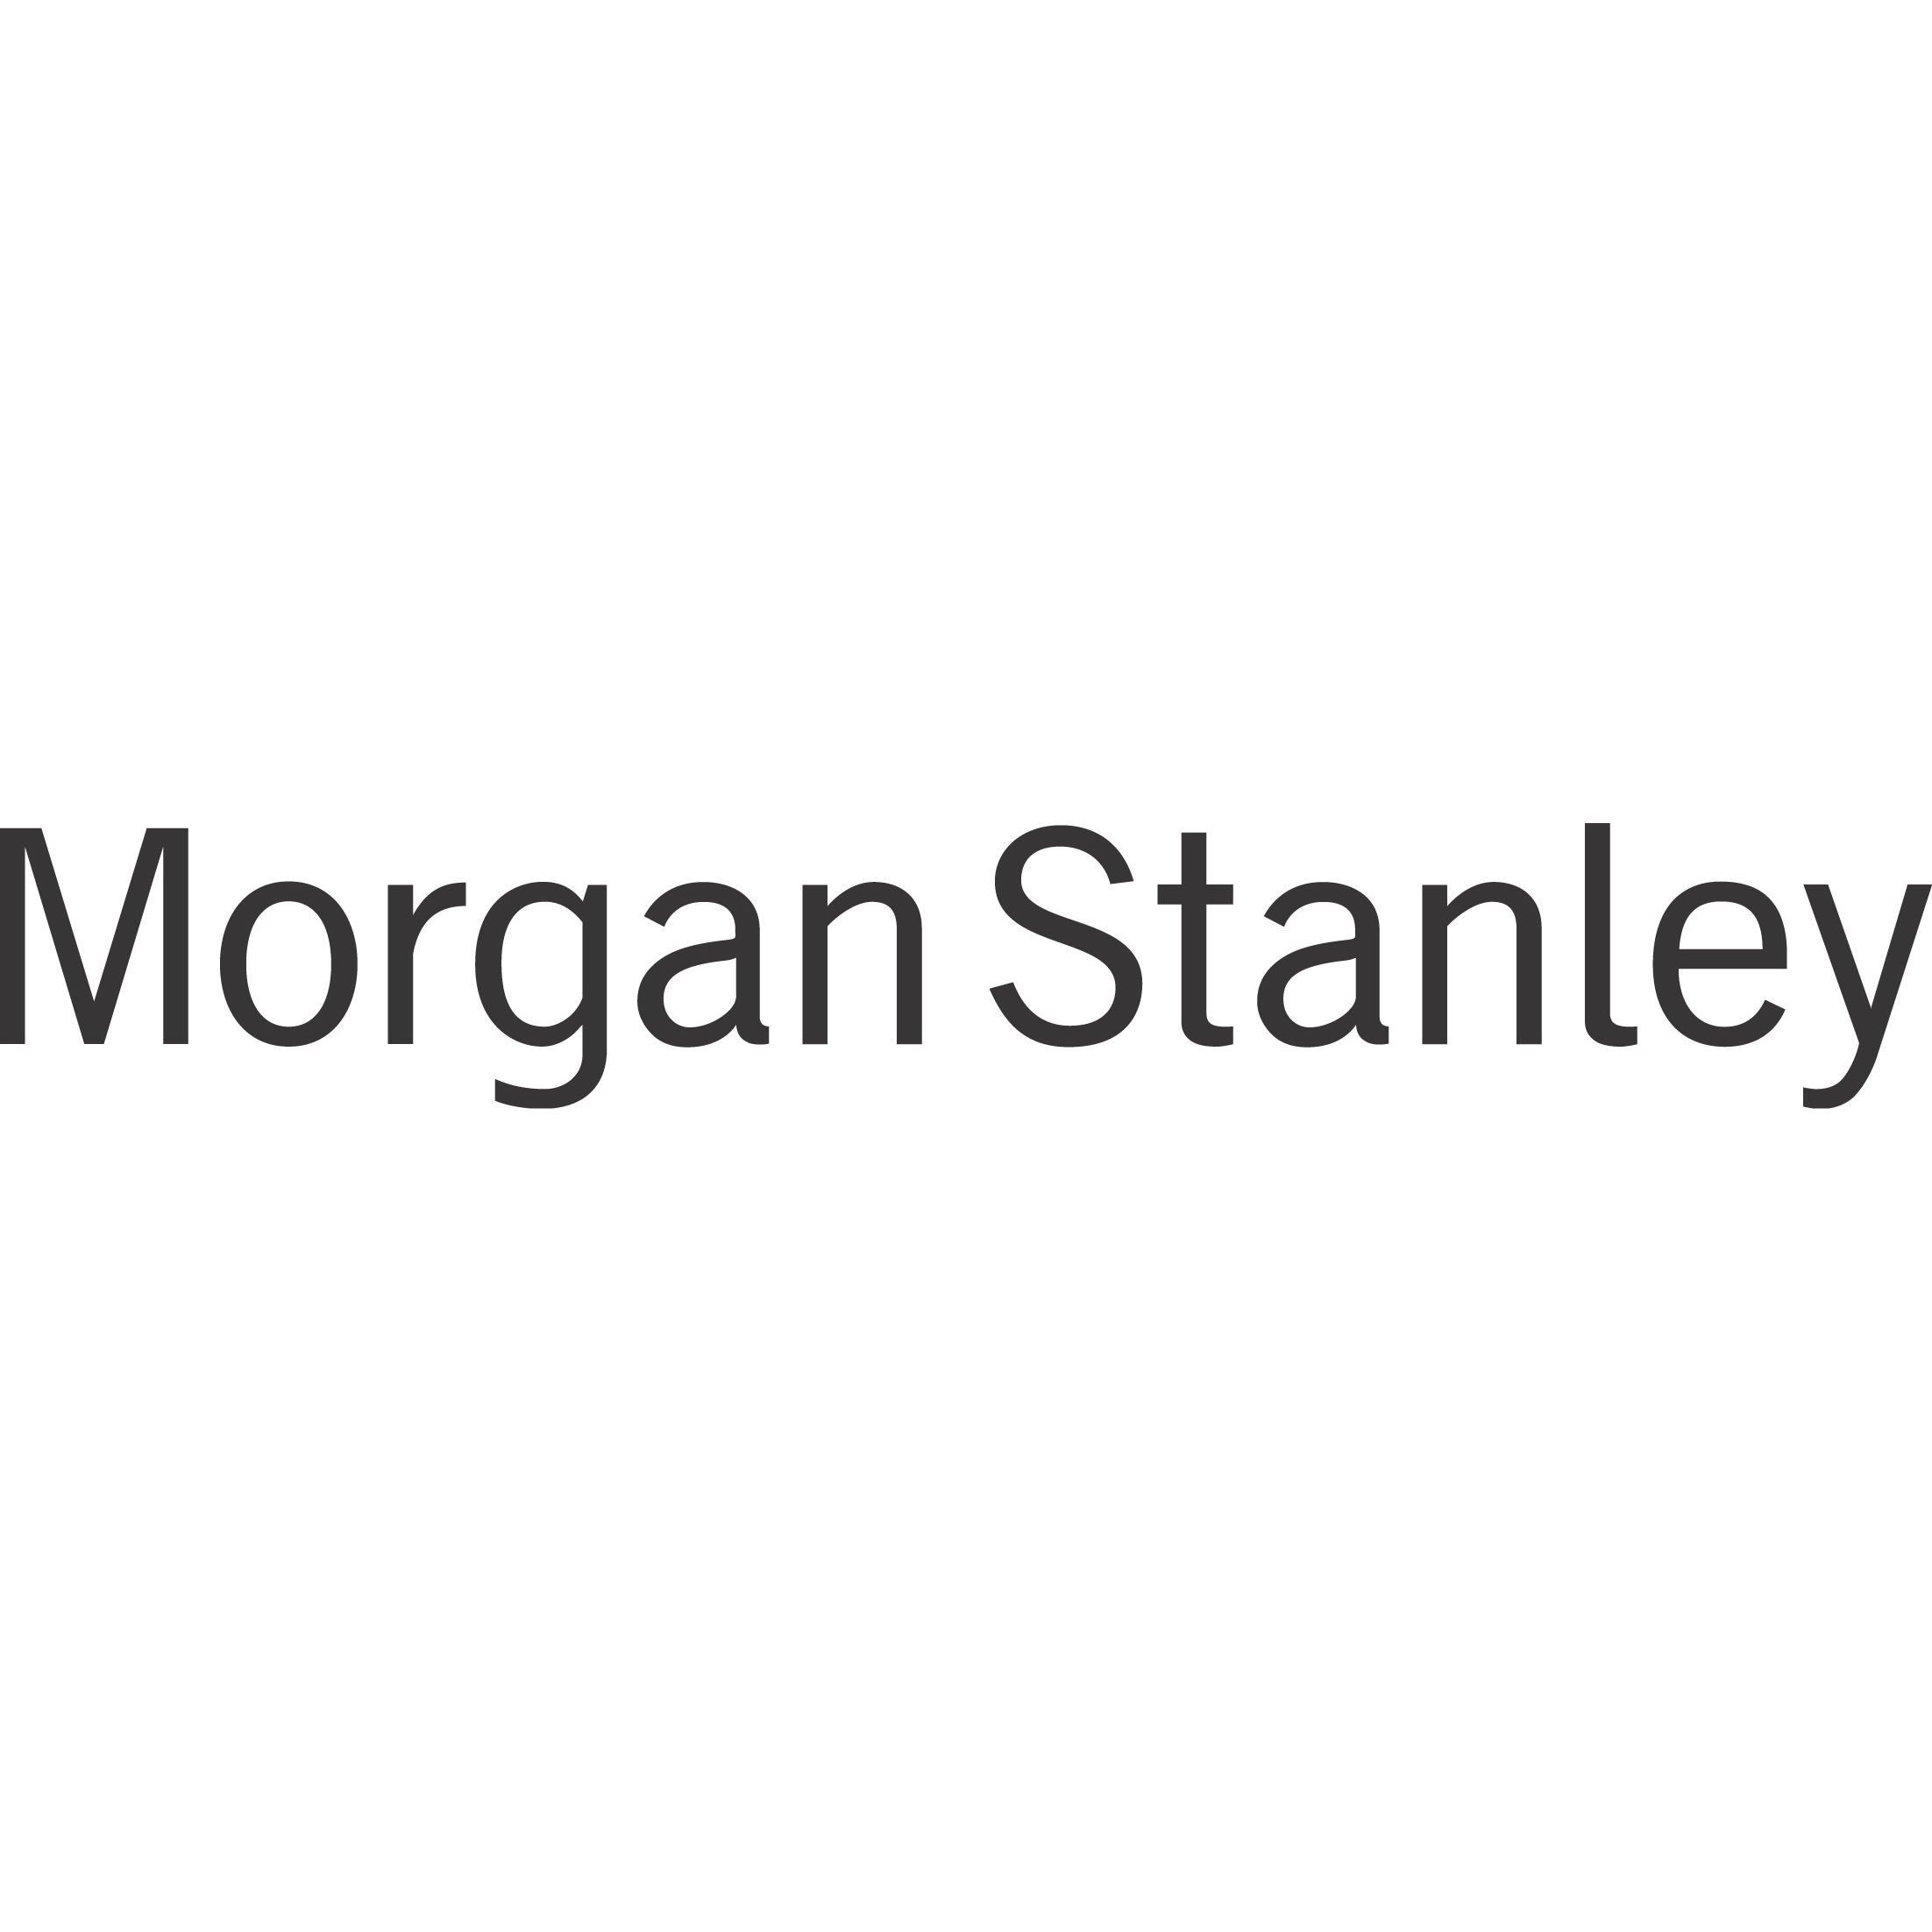 Don Caron - Morgan Stanley | Financial Advisor in Washington,District of Columbia